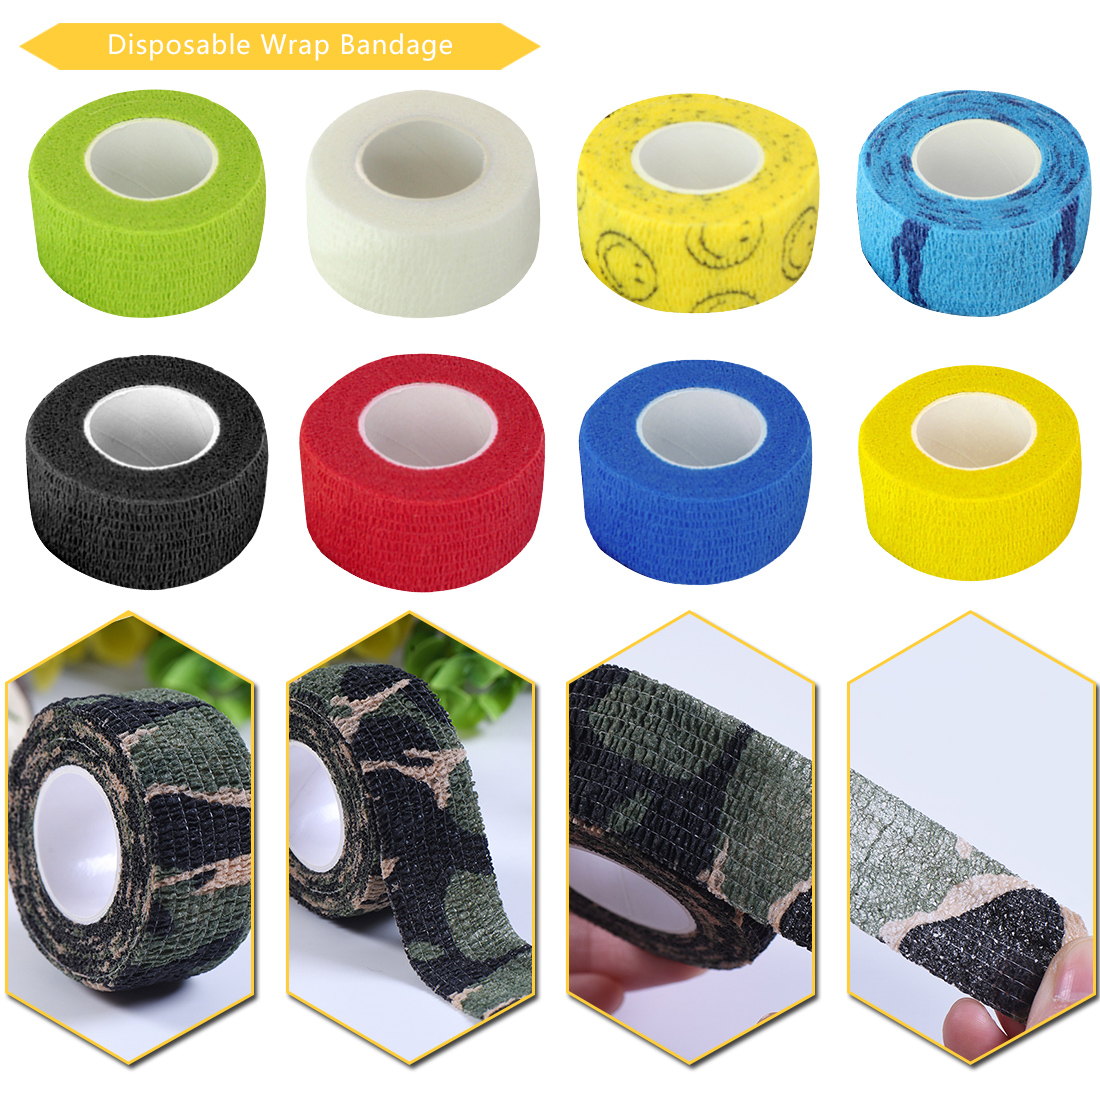 Hot Finger Wrist Protection Medical Tape Disposable Nonwoven Waterproof Self Adhesive Elastic Bandage Tattoo Accesories Grip Wra